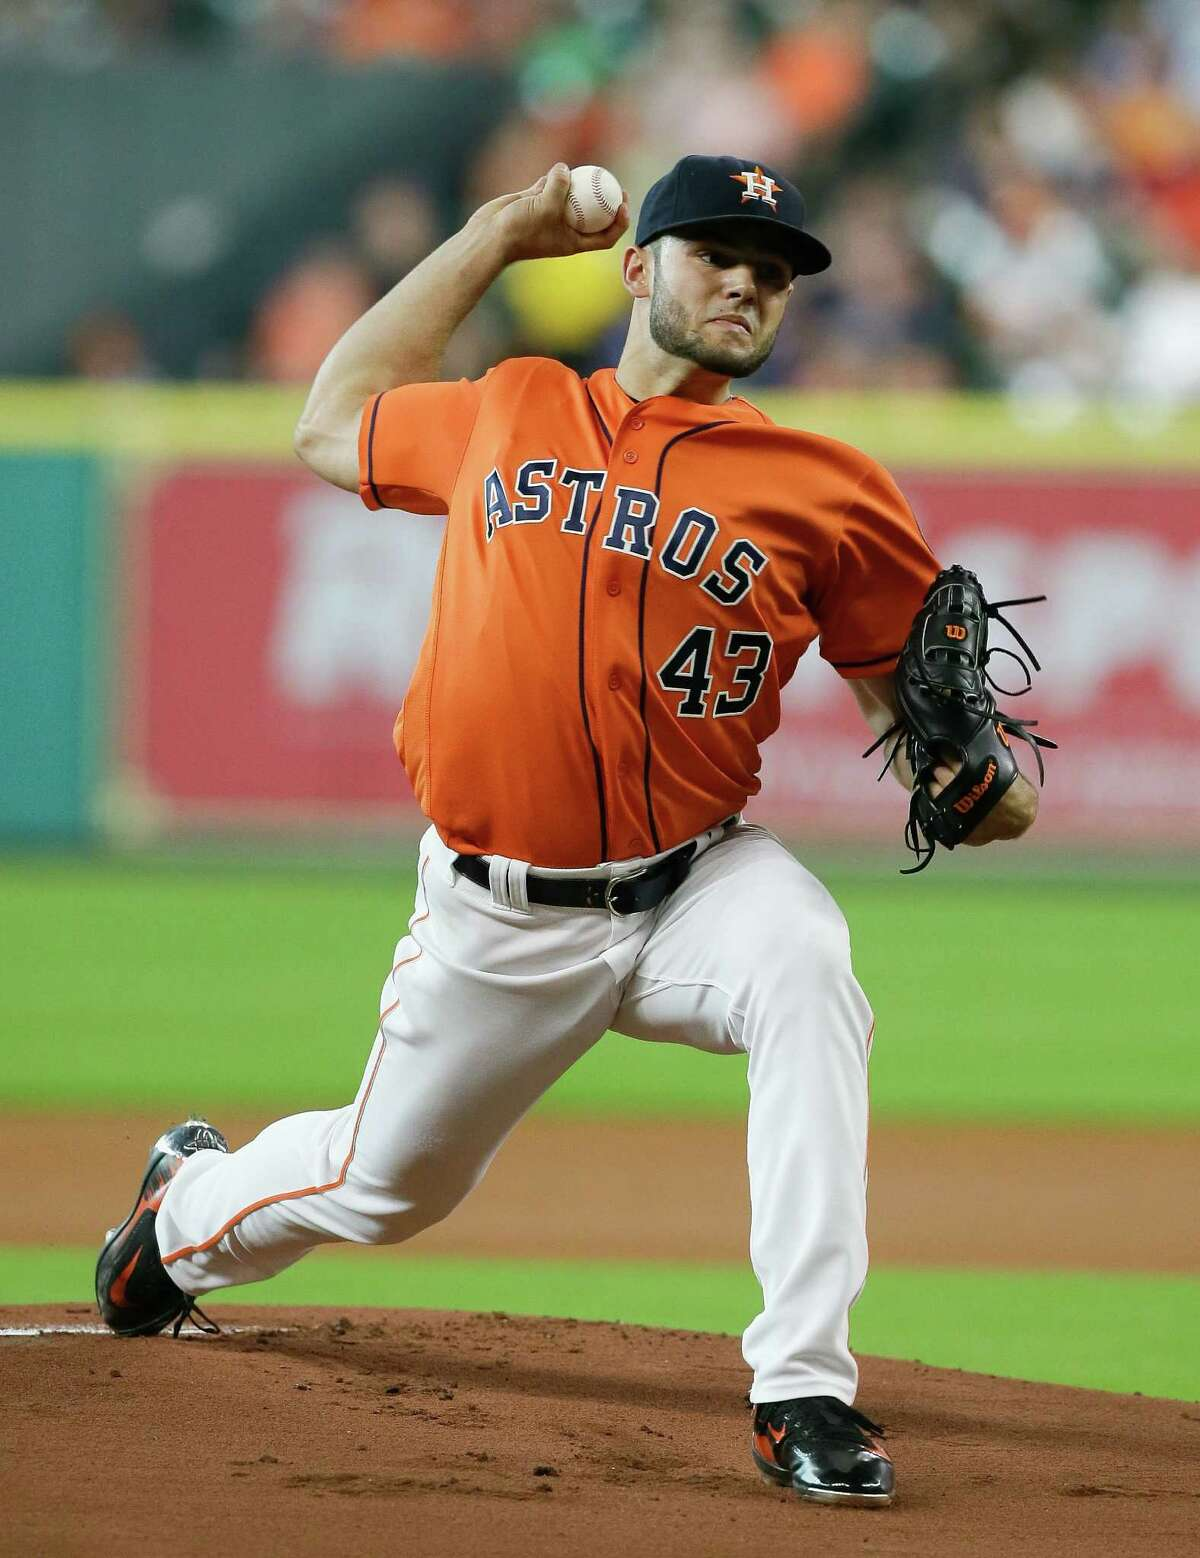 HOUSTON, TX - JUNE 17: Lance McCullers #43 of the Houston Astros pitches in the first inning against the Cincinnati Reds at Minute Maid Park on June 17, 2016 in Houston, Texas.